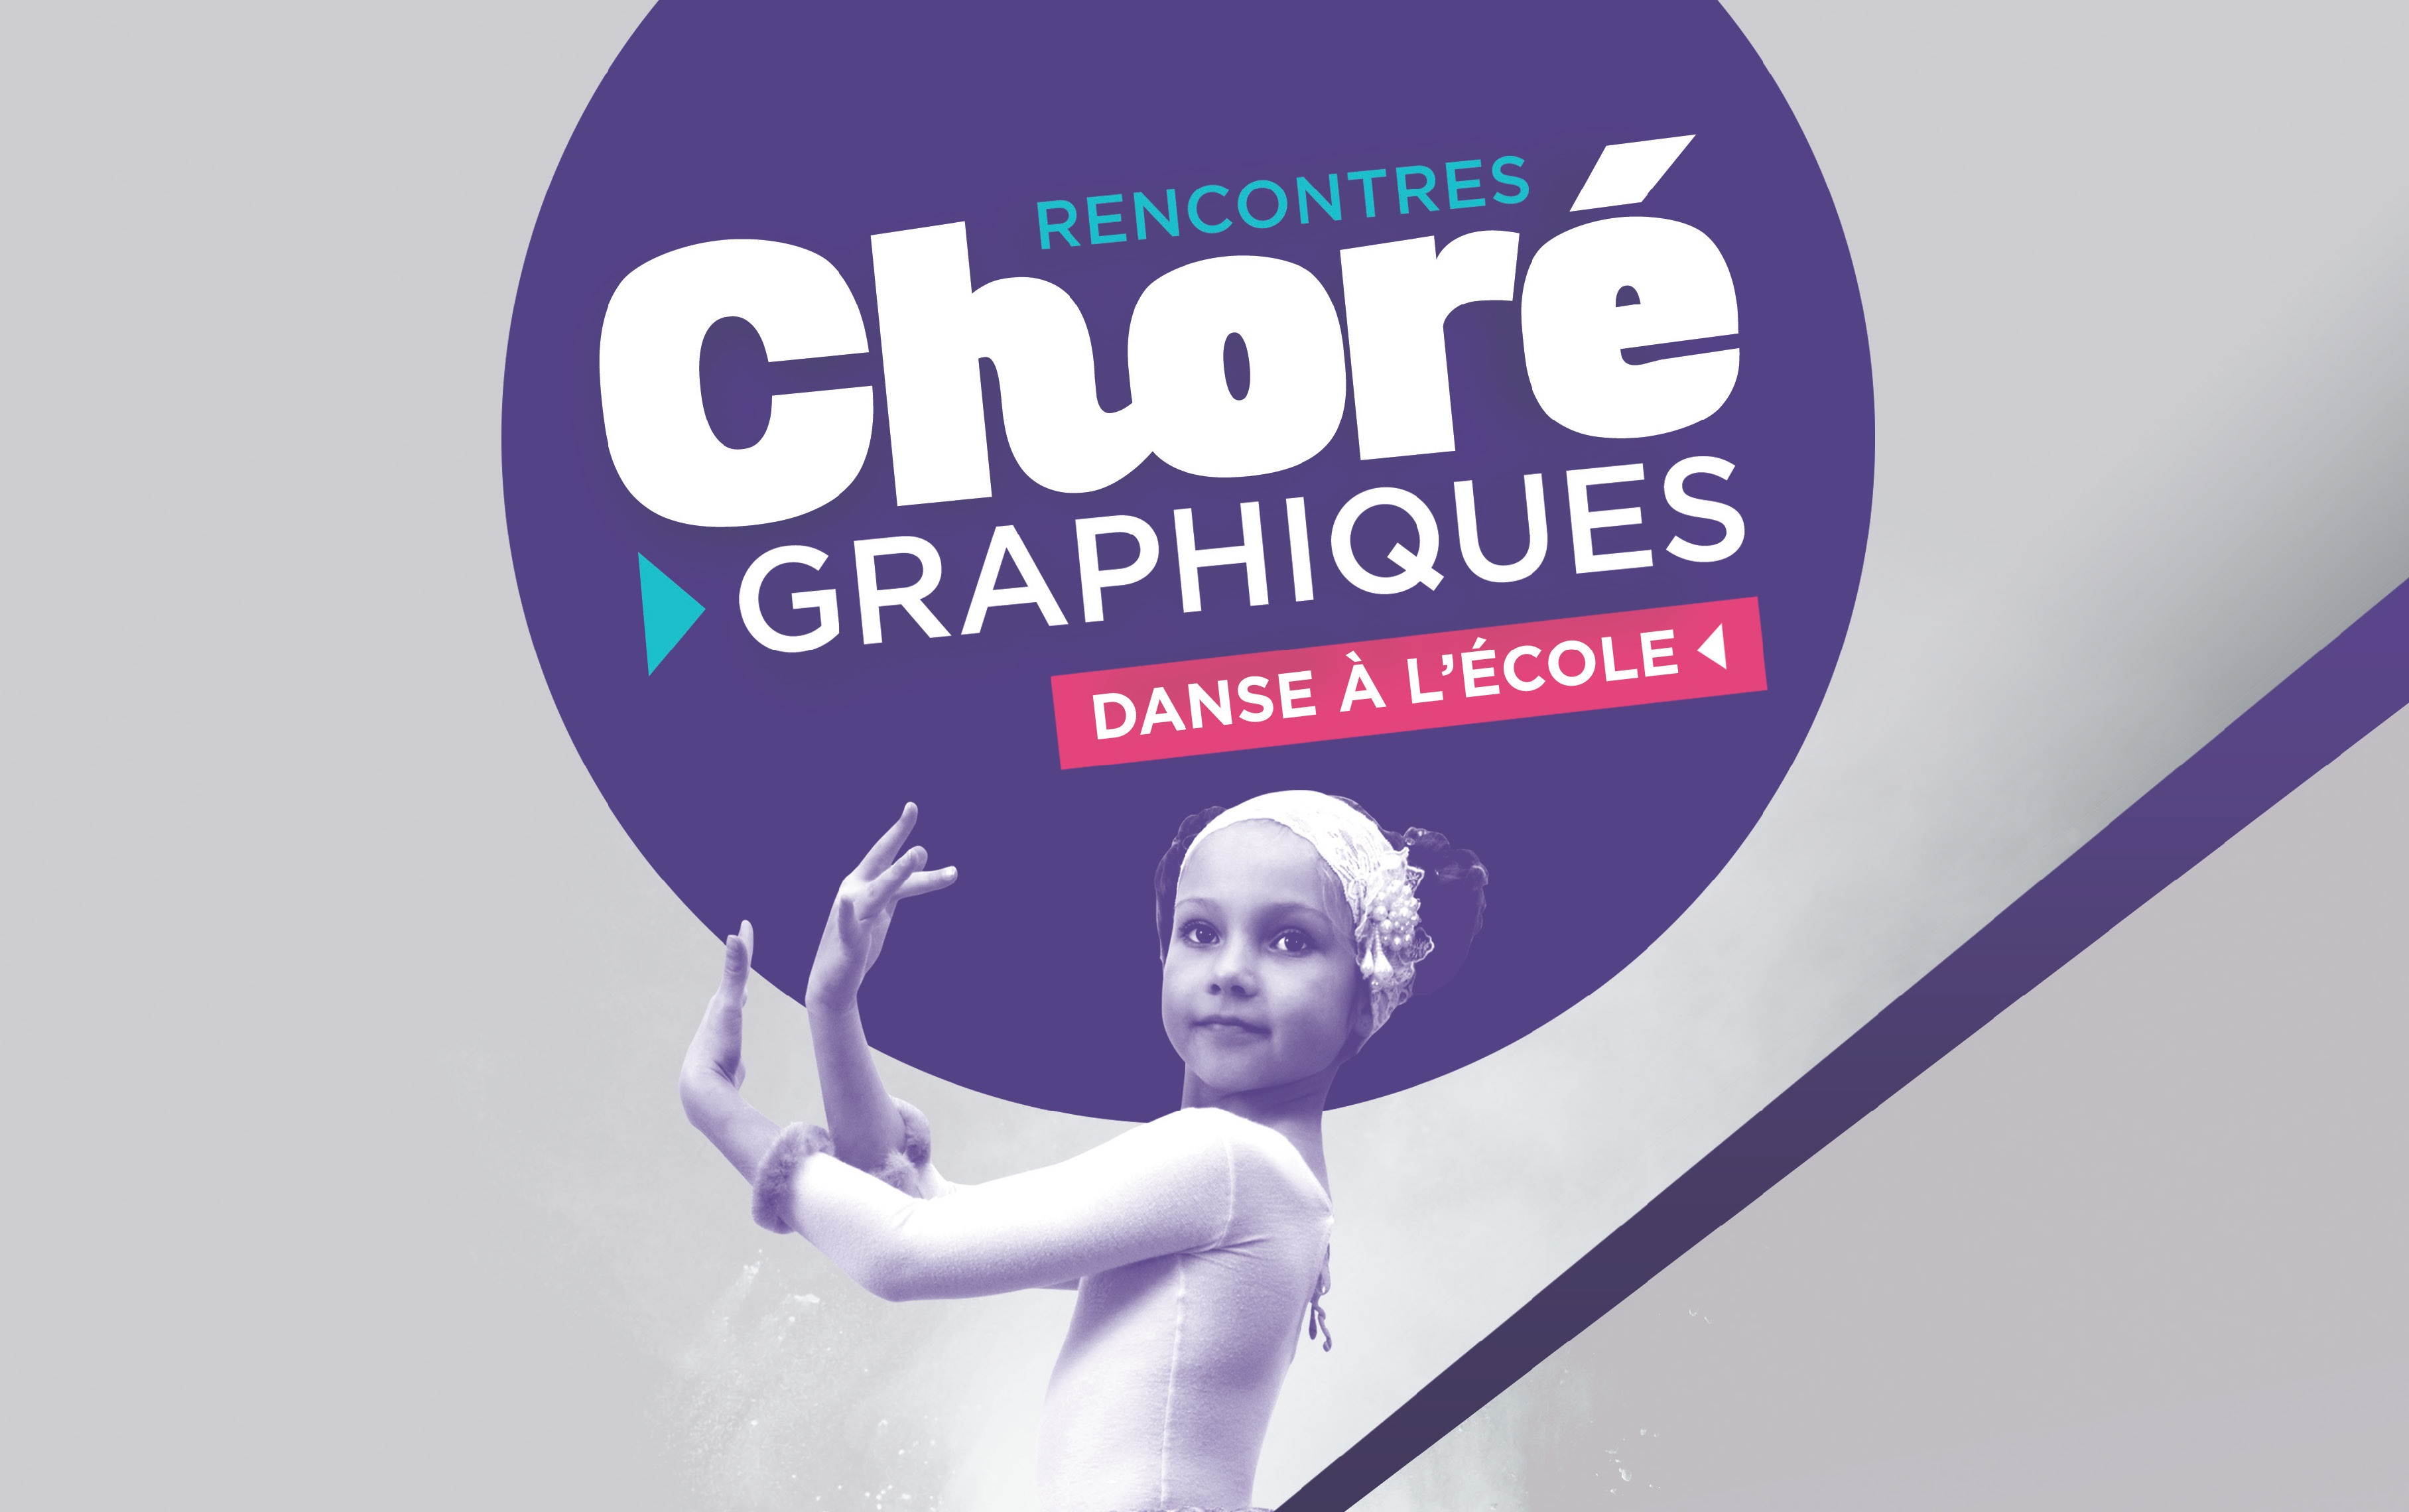 Rencontres reglementaires chartres